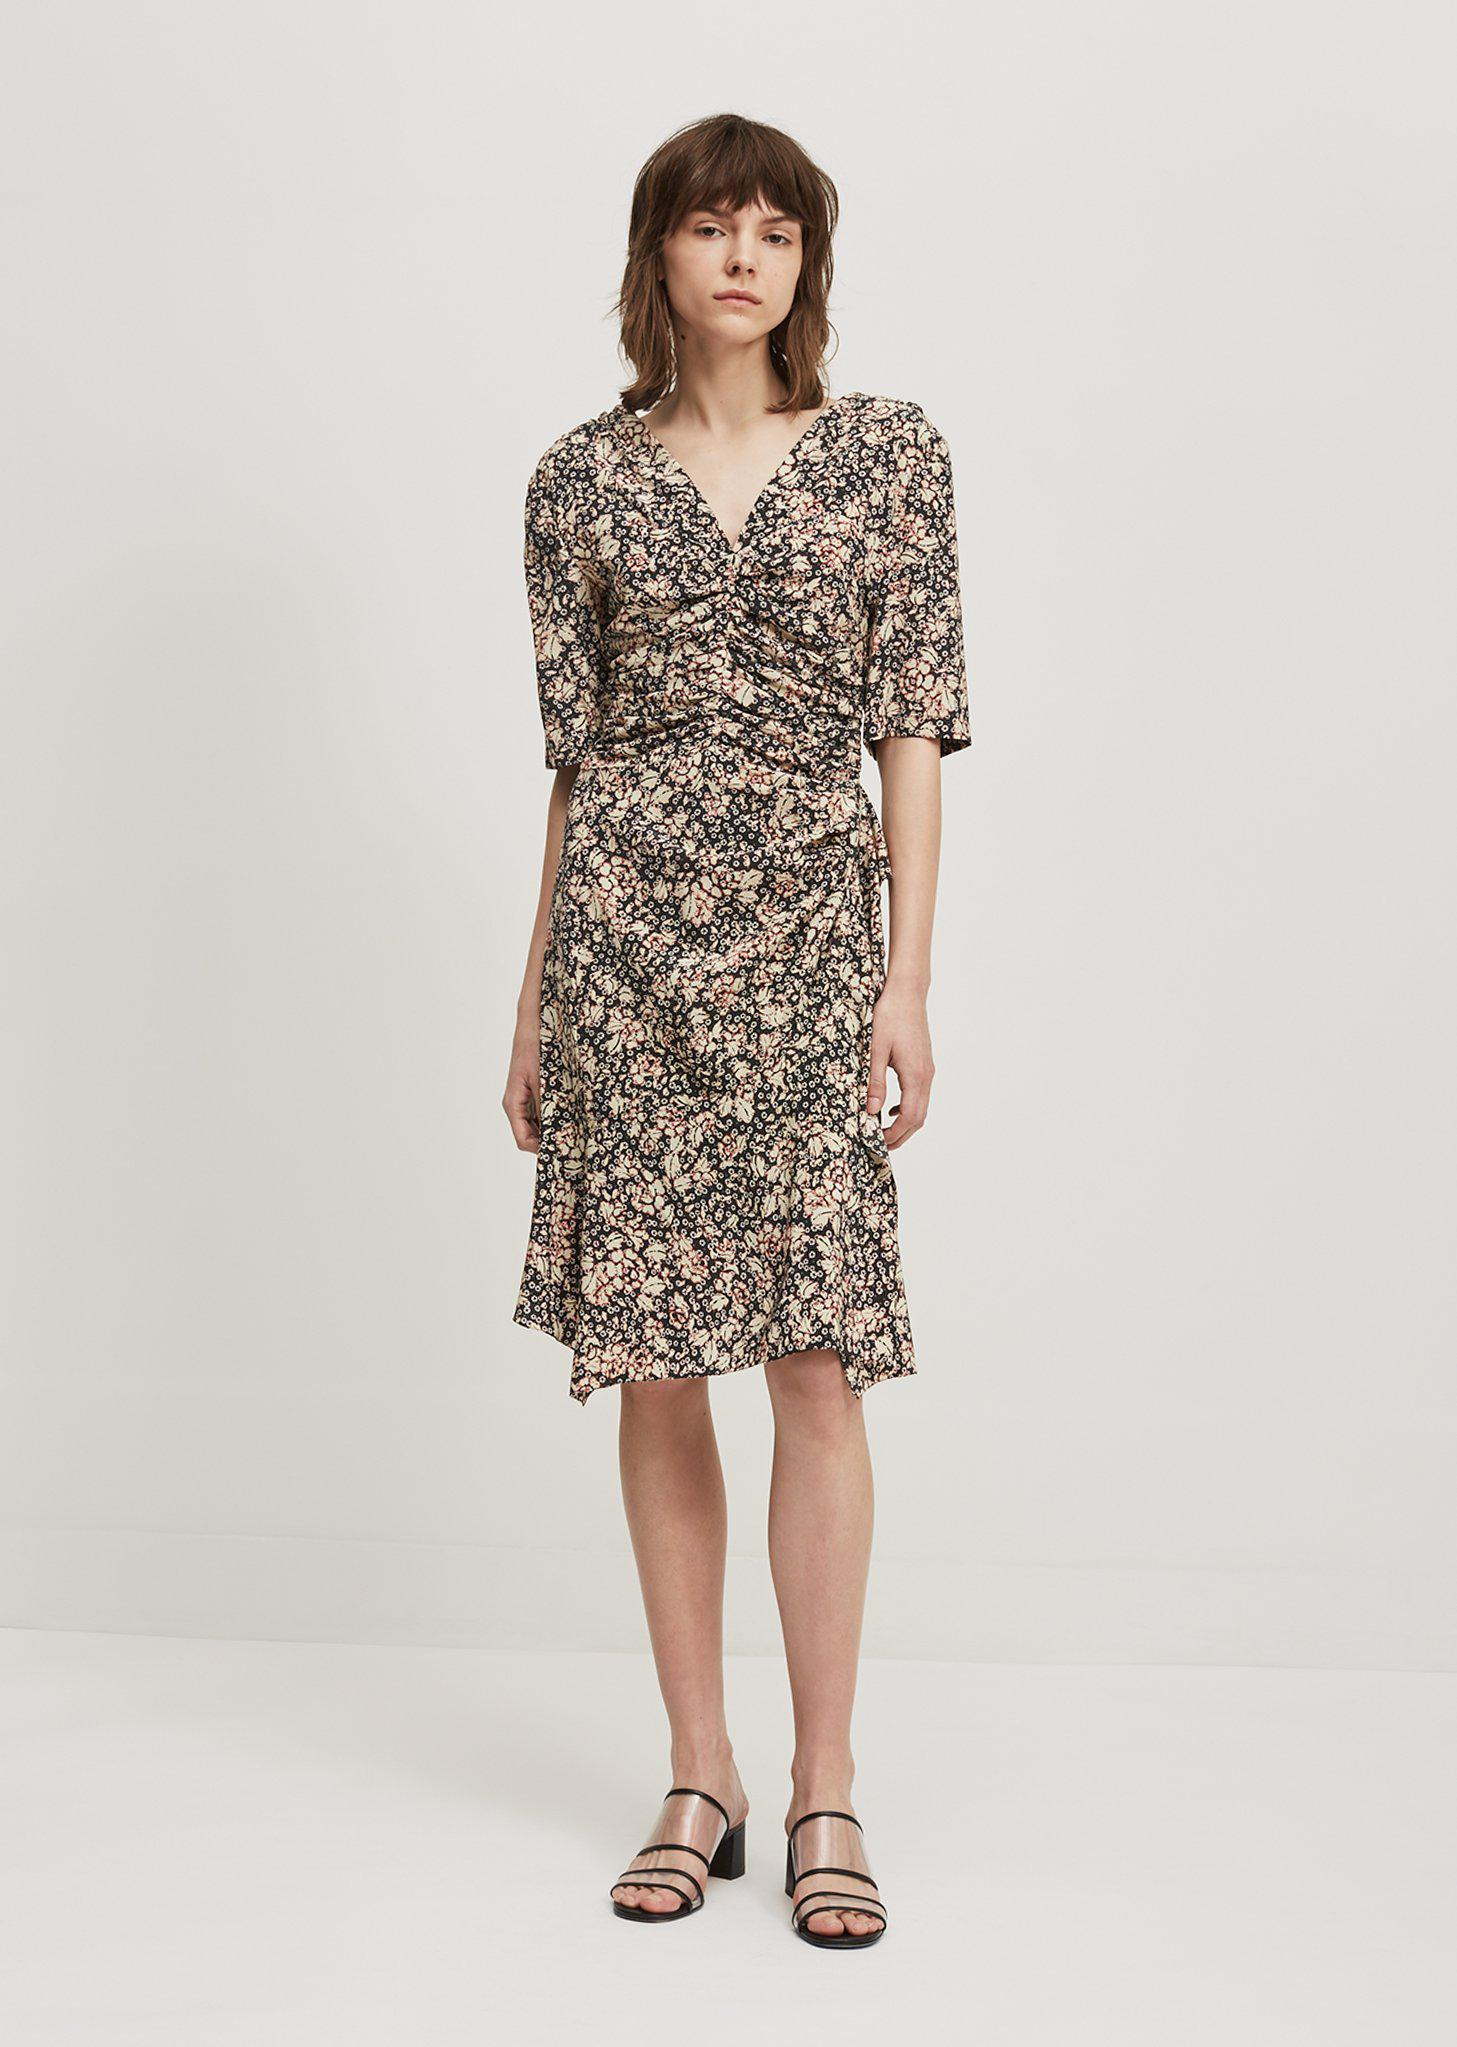 Brodie Silk Floral Print V-Neck Dress - Blue Isabel Marant Discount Clearance Store bHpqAb6T